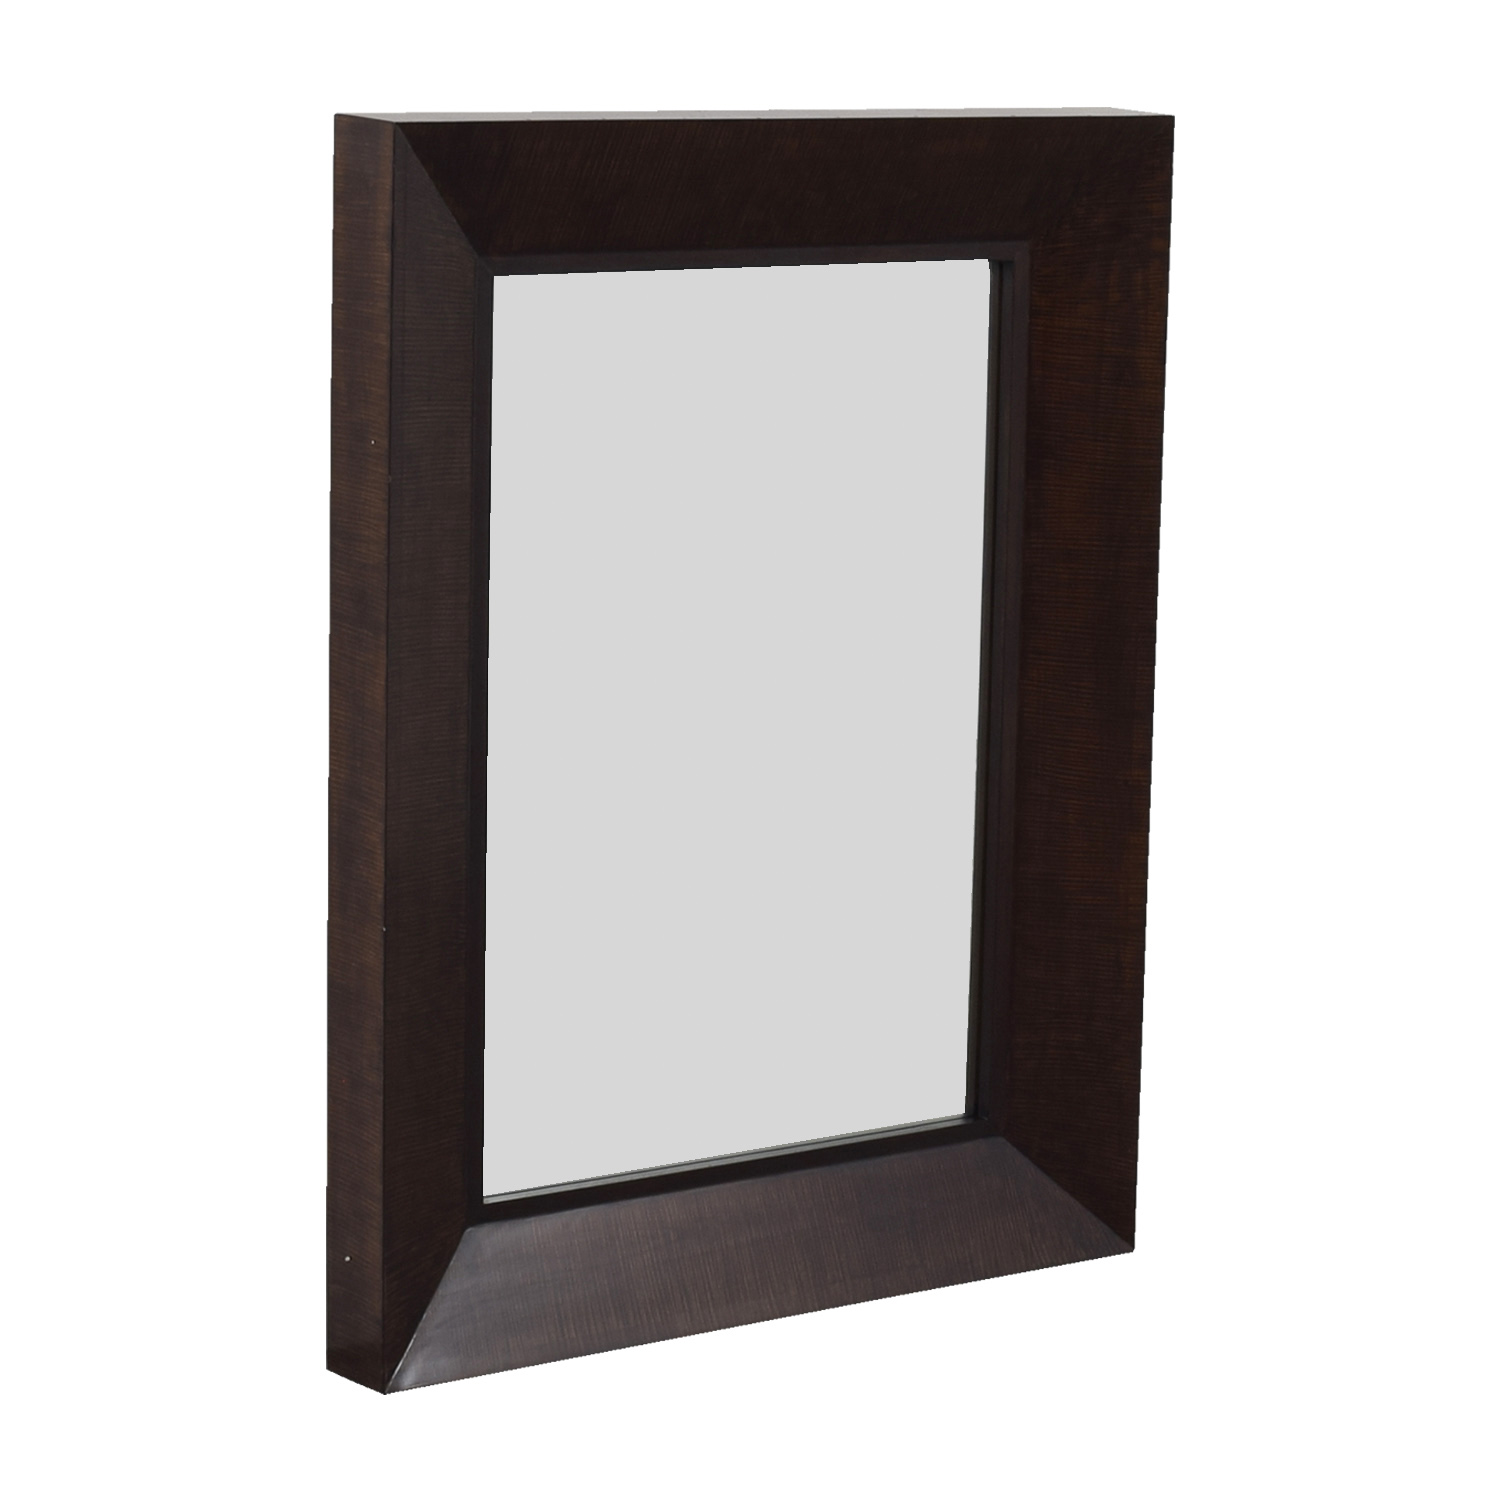 Kreiss Kreiss Wood Framed Mirror price